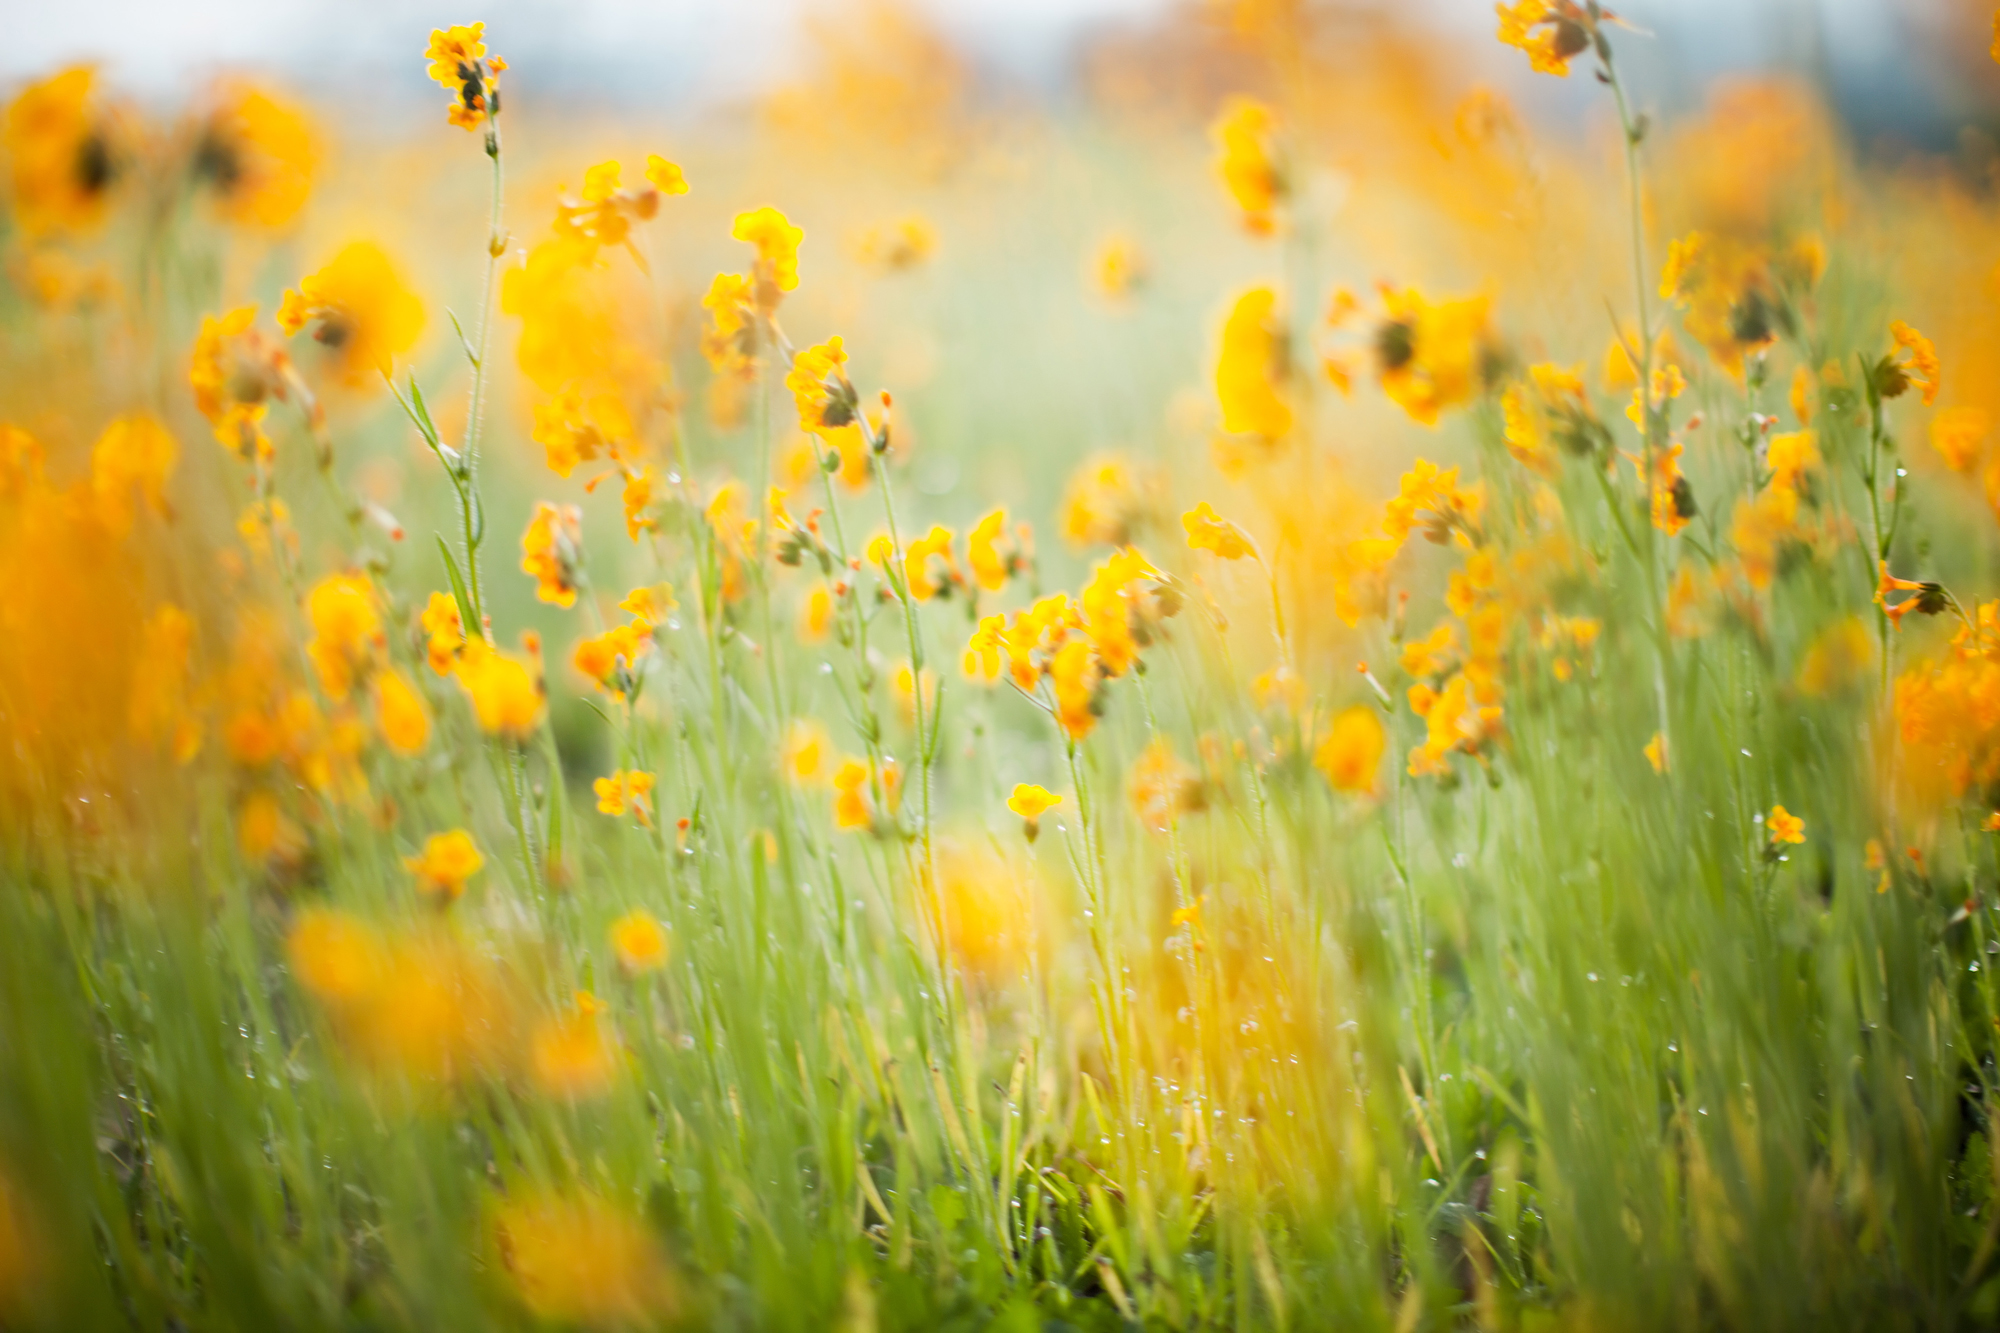 Blurred yellow flowers